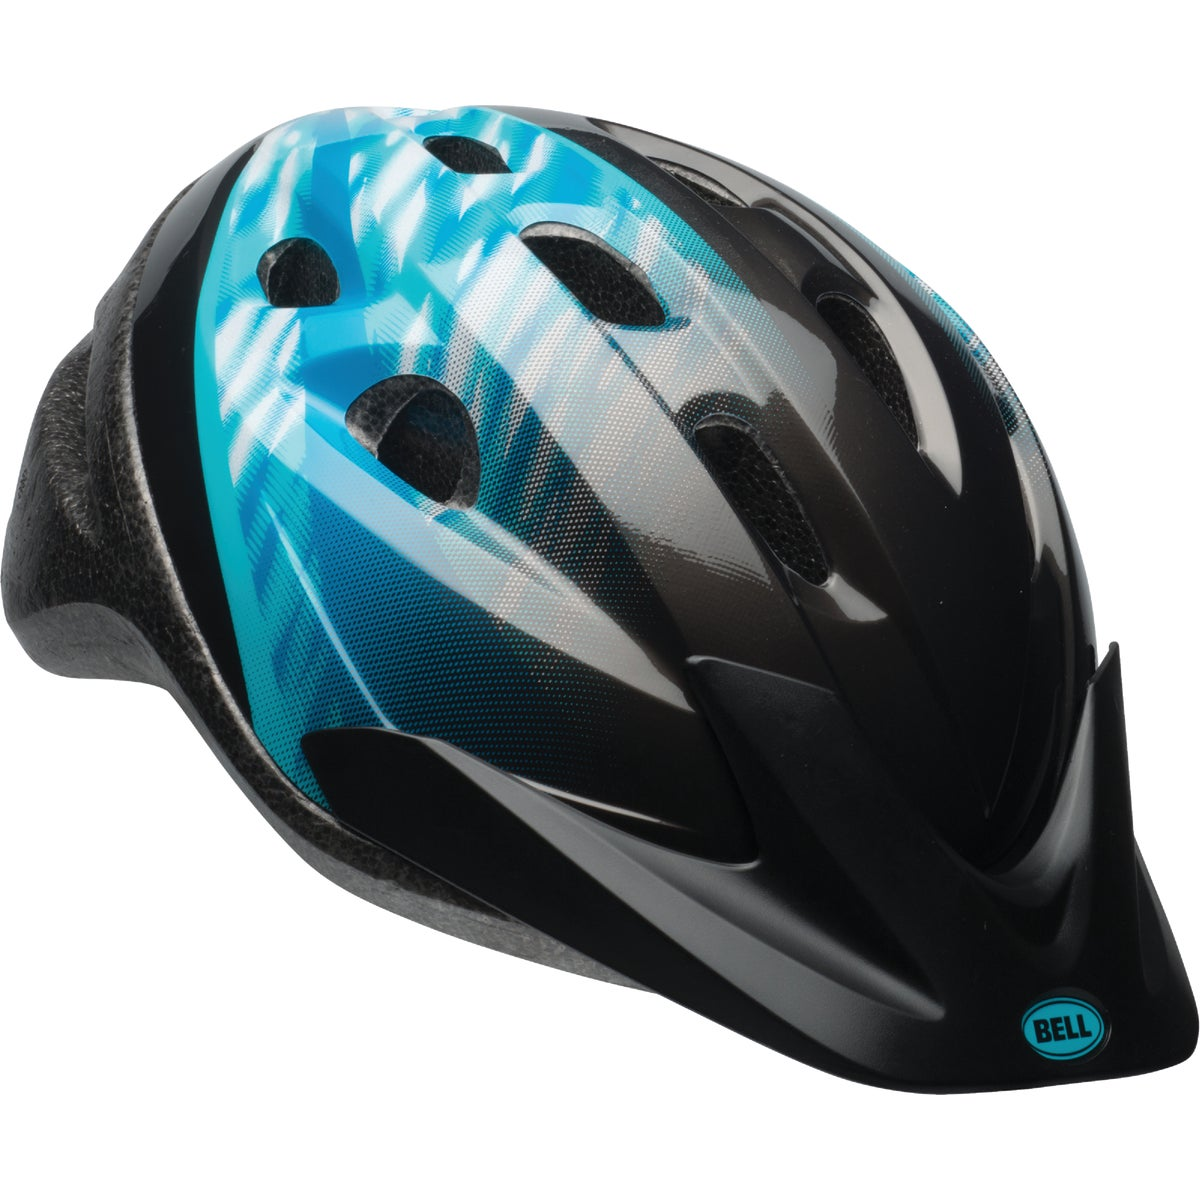 Bell Sports 8+ GIRLS YOUTH HELMET 1004649